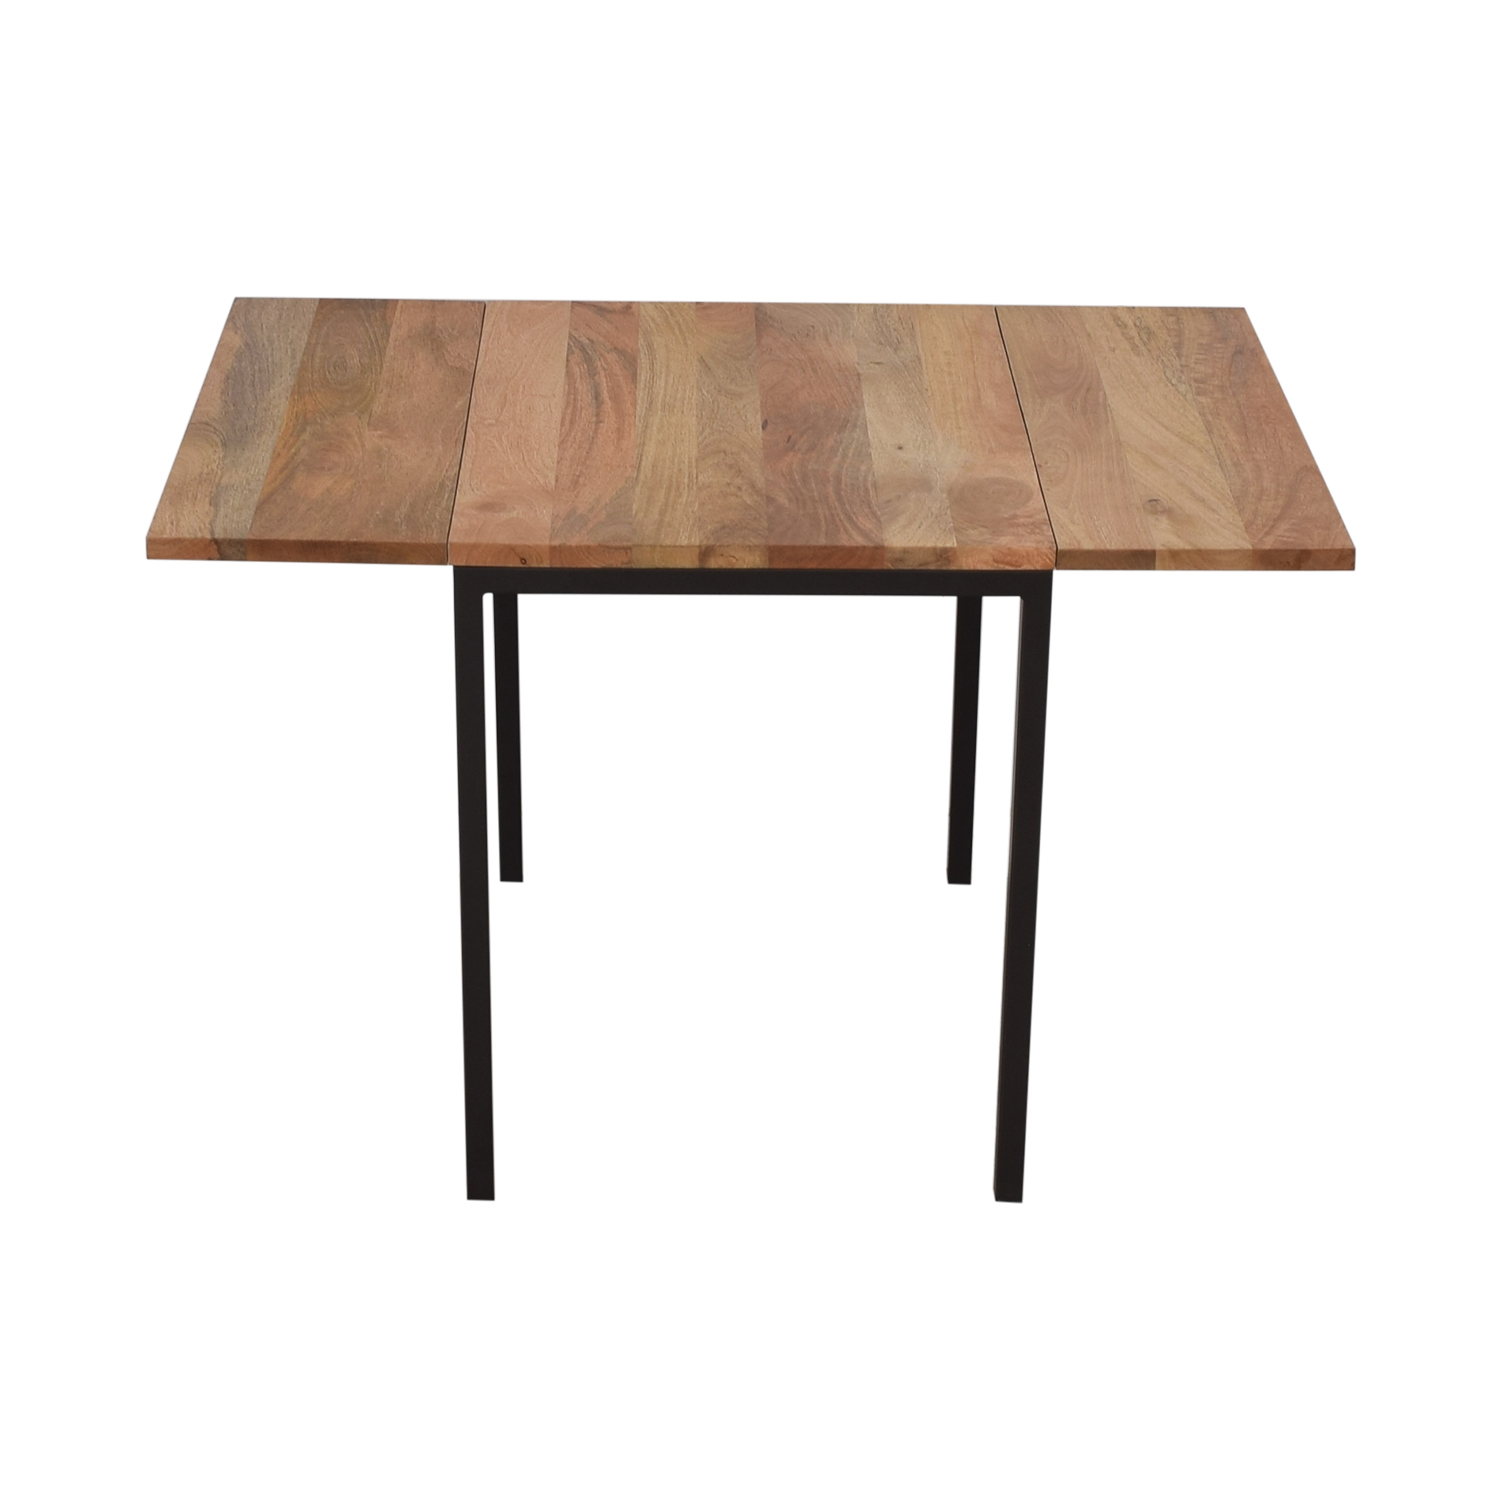 West Elm West Elm Raw Mango Drop Leaf Dining Table coupon